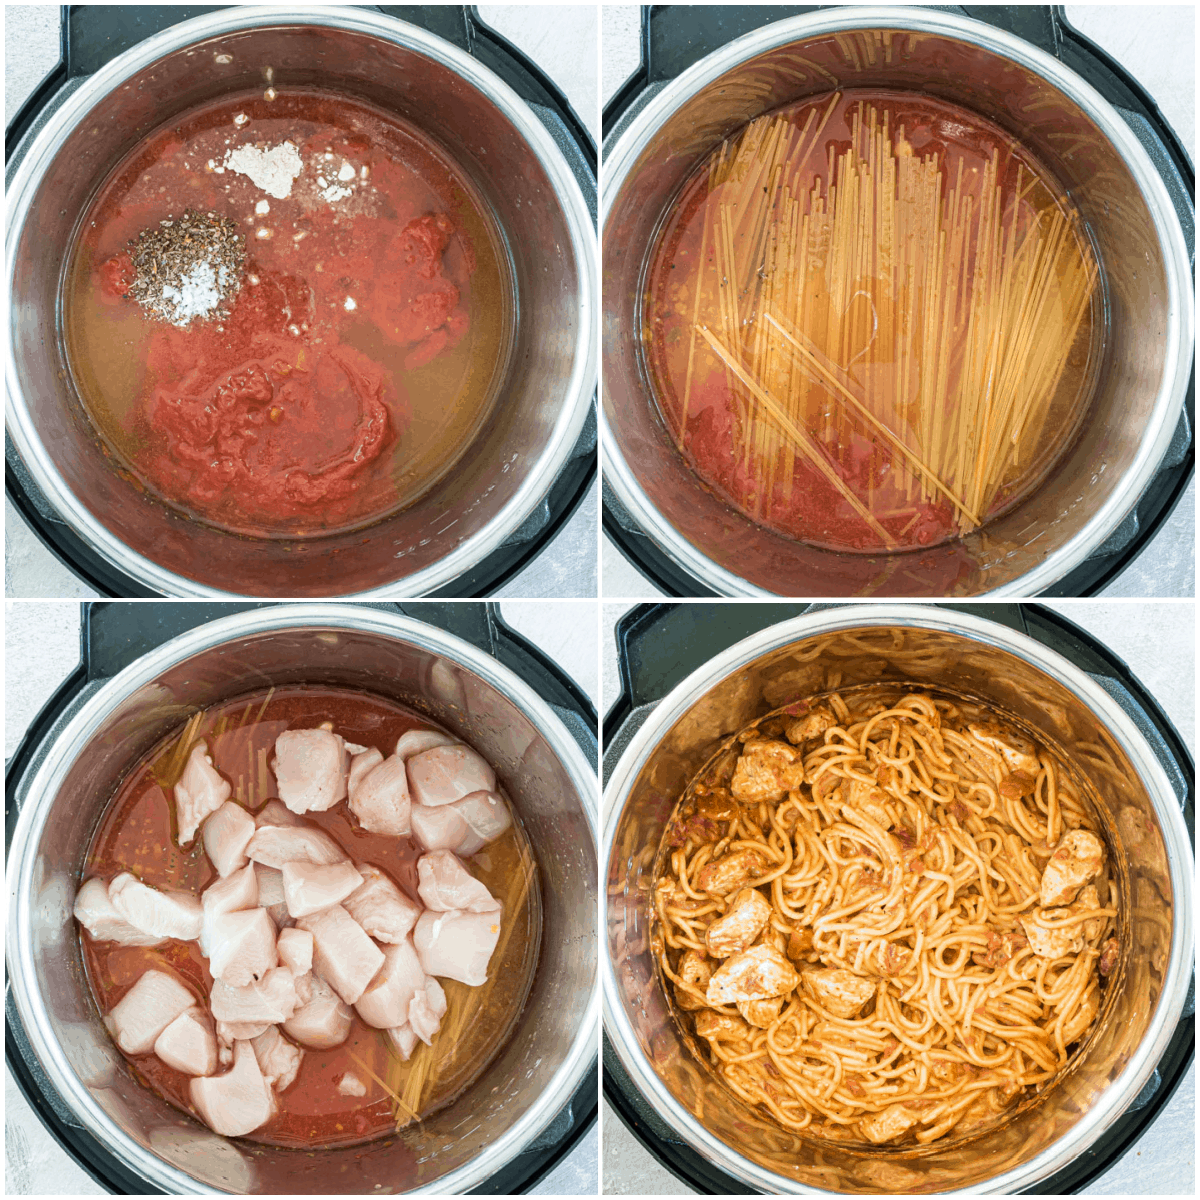 image collage showing the steps for making chicken spaghetti in Instant Pot